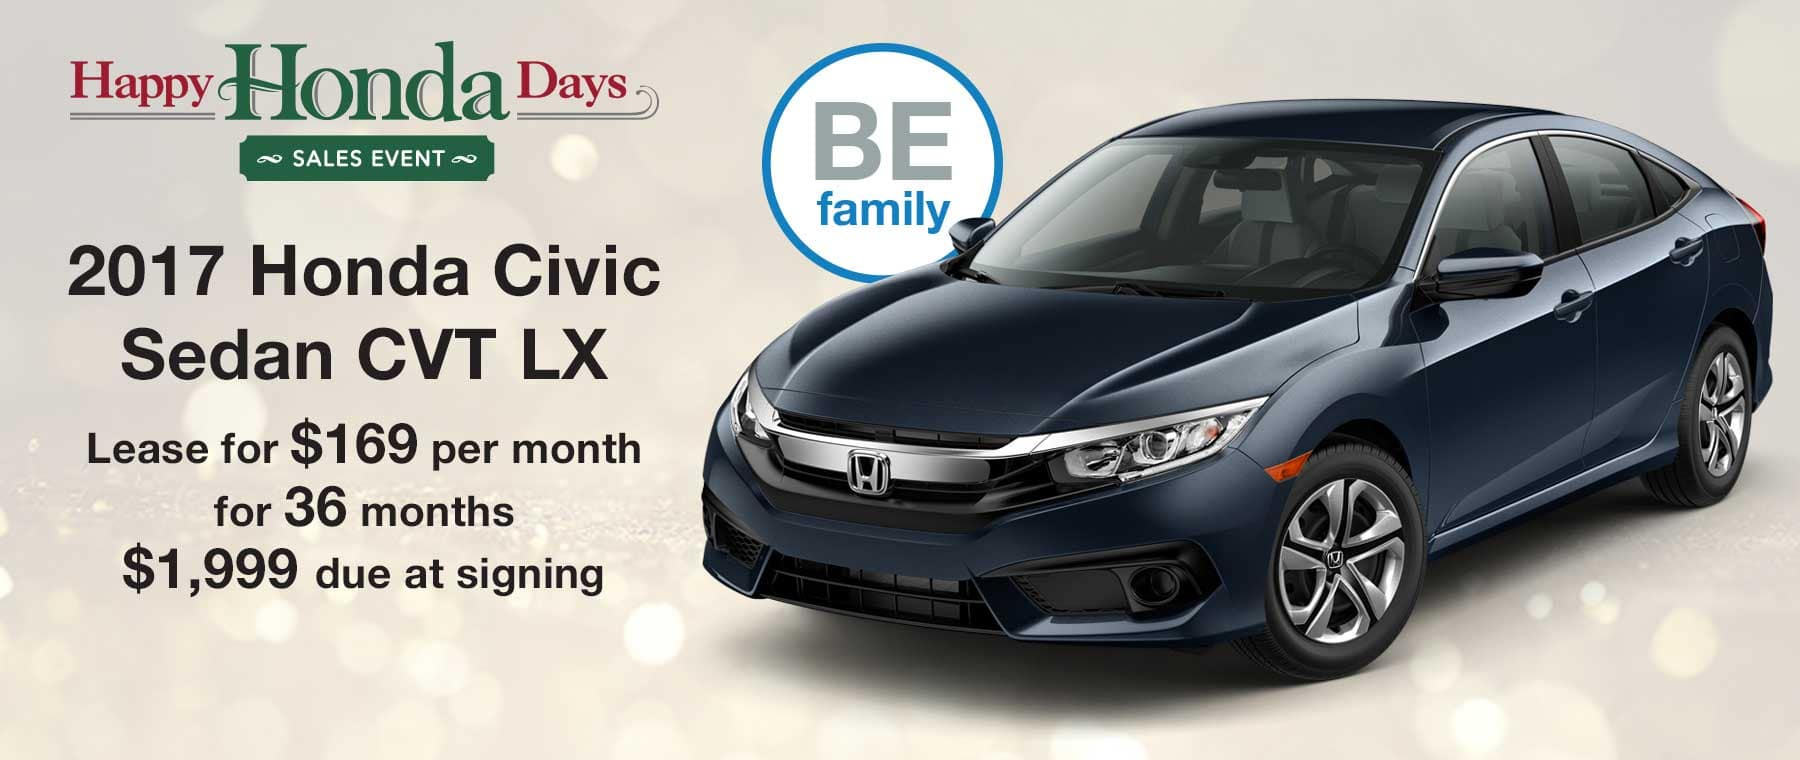 Lease a new 2017 Honda Civic Sedan for $169 per month with $1,999 due at signing